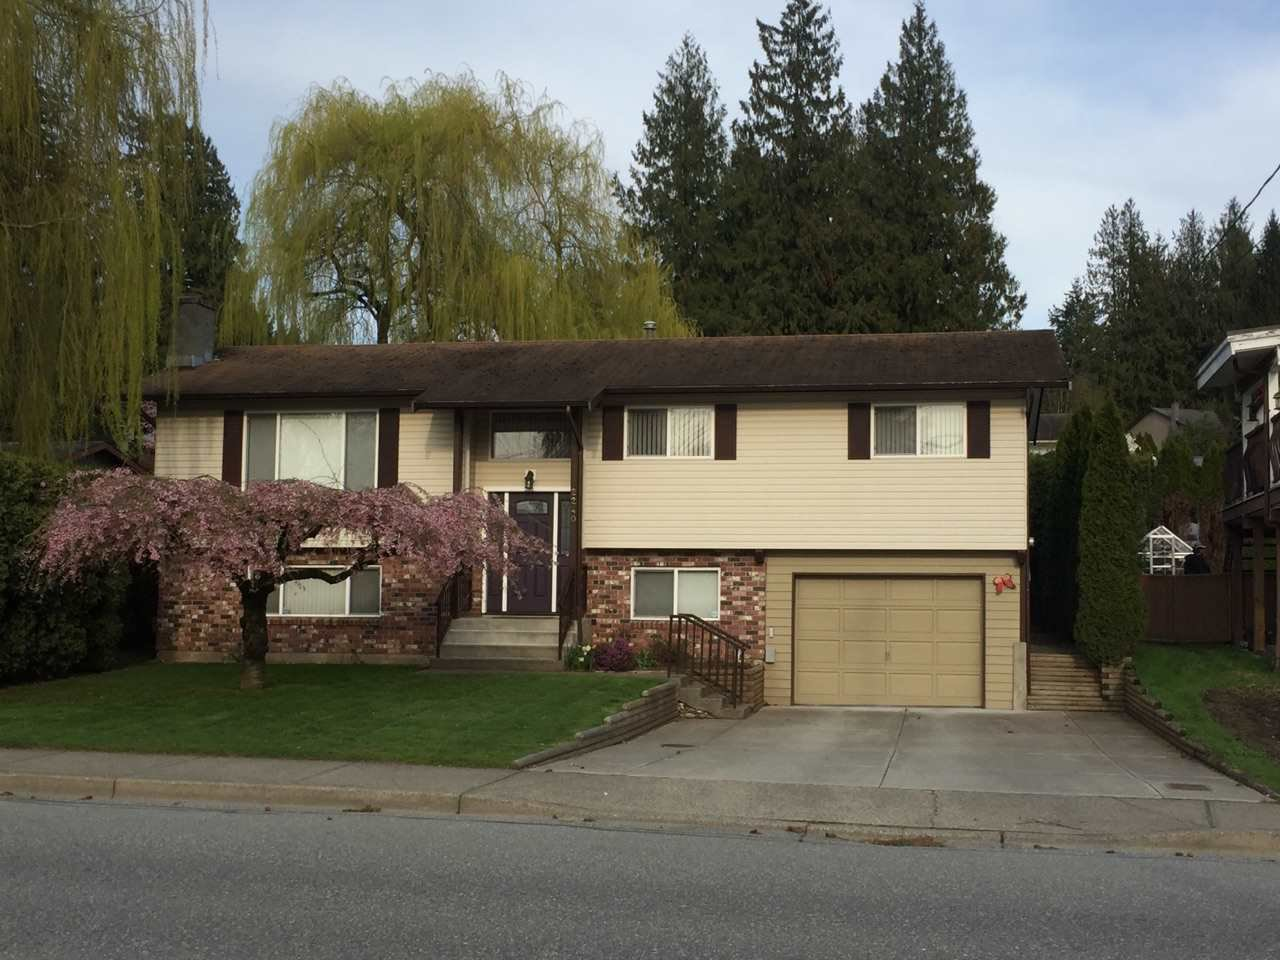 Main Photo: 2240 MCMILLAN Road in Abbotsford: Abbotsford East House for sale : MLS®# R2153477